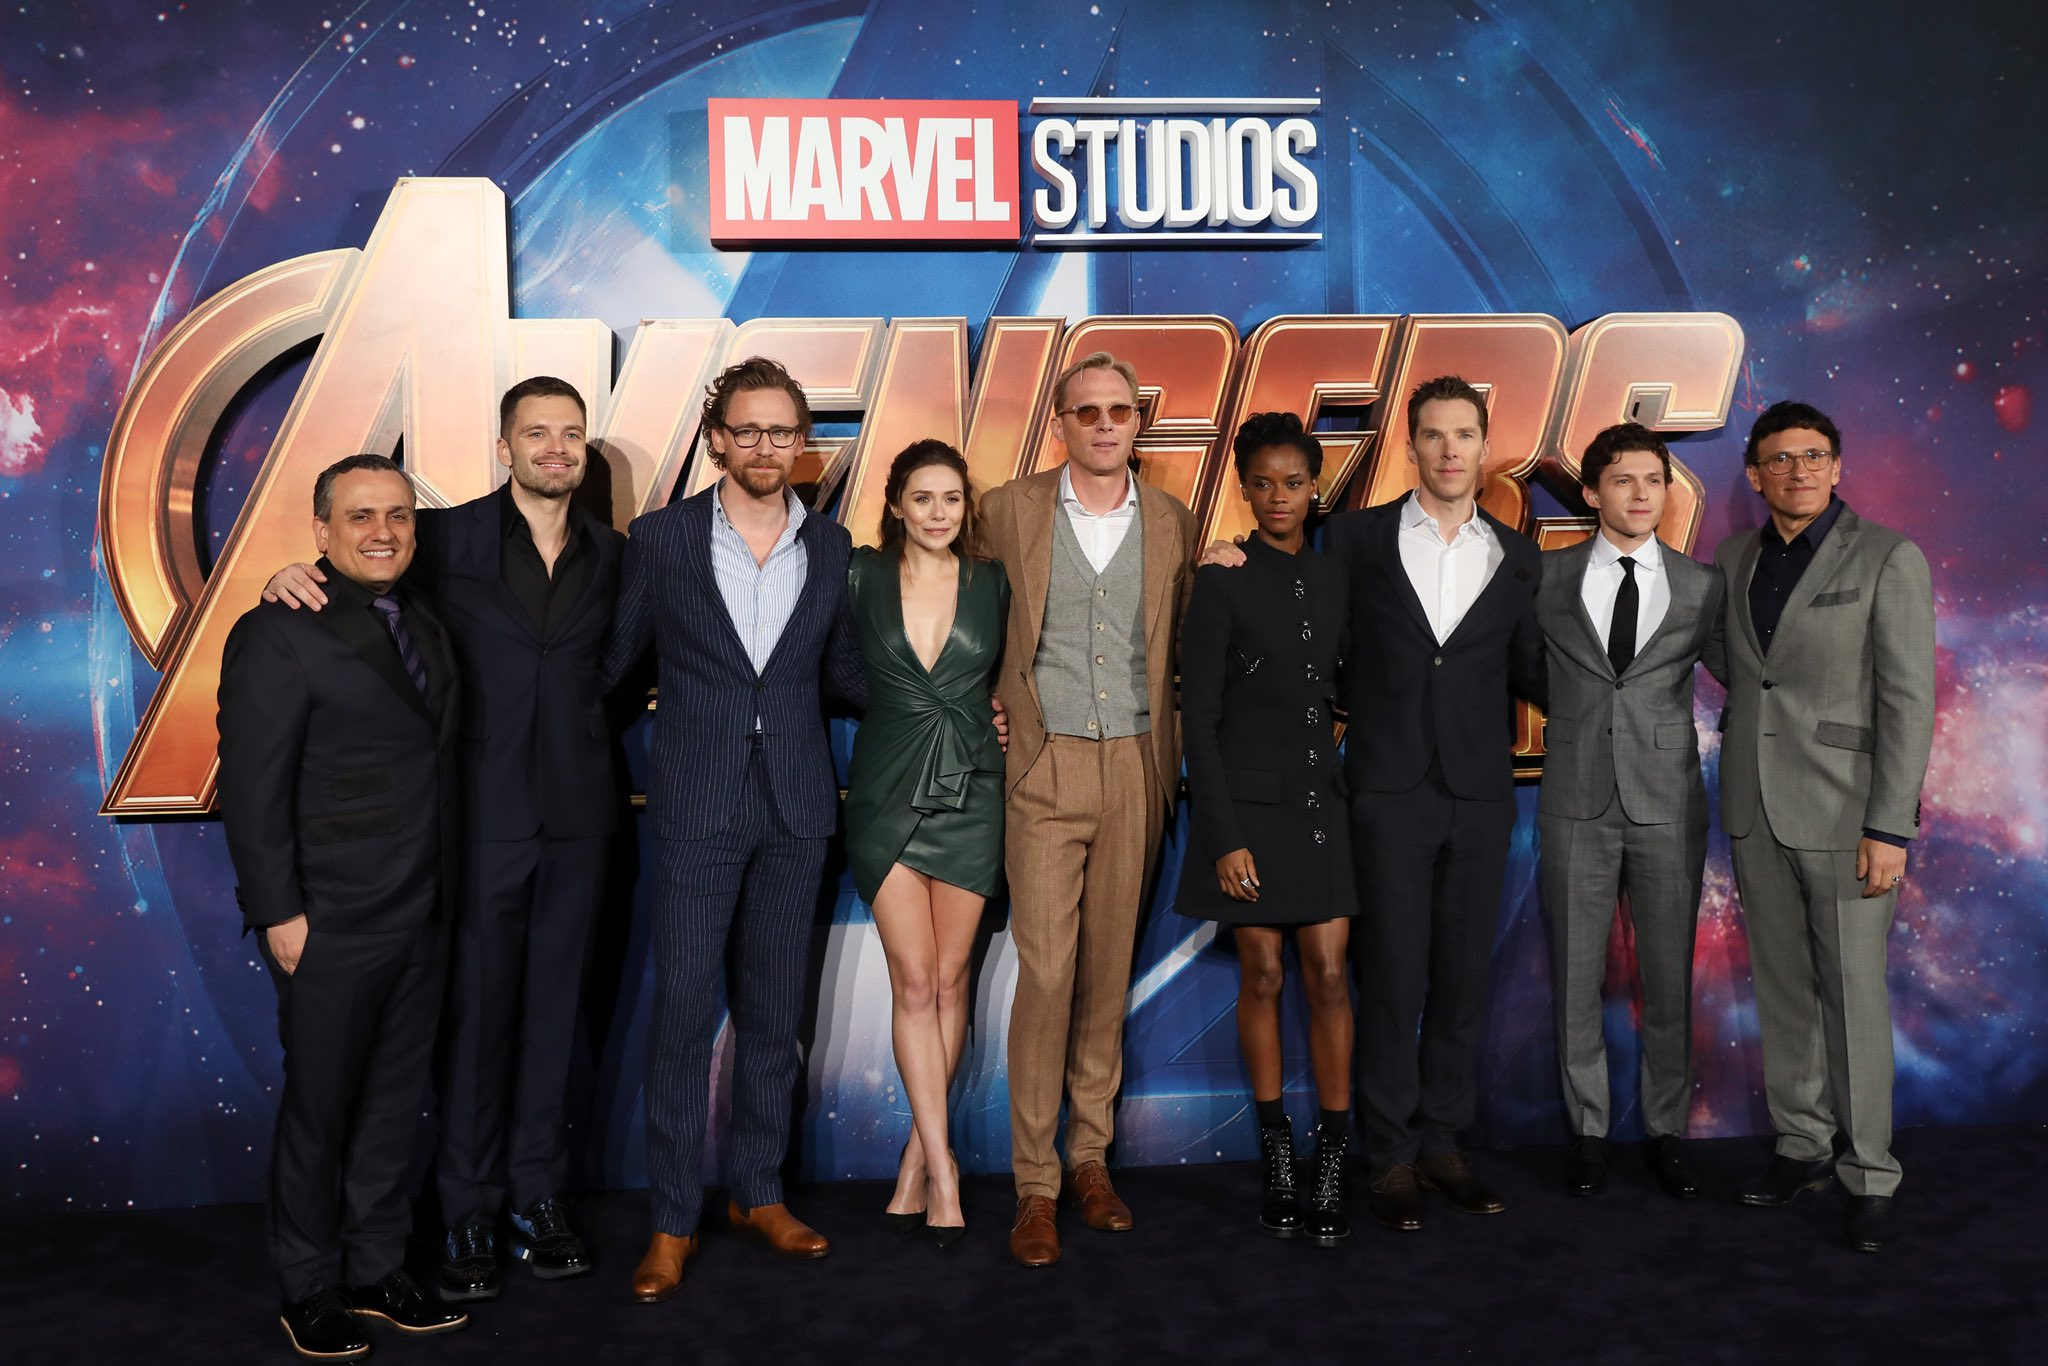 """See the photos from the Marvel Studios' """"Avengers: #InfinityWar"""" red carpet fan event in London! (1/3) https://t.co/mxixxixPkY"""